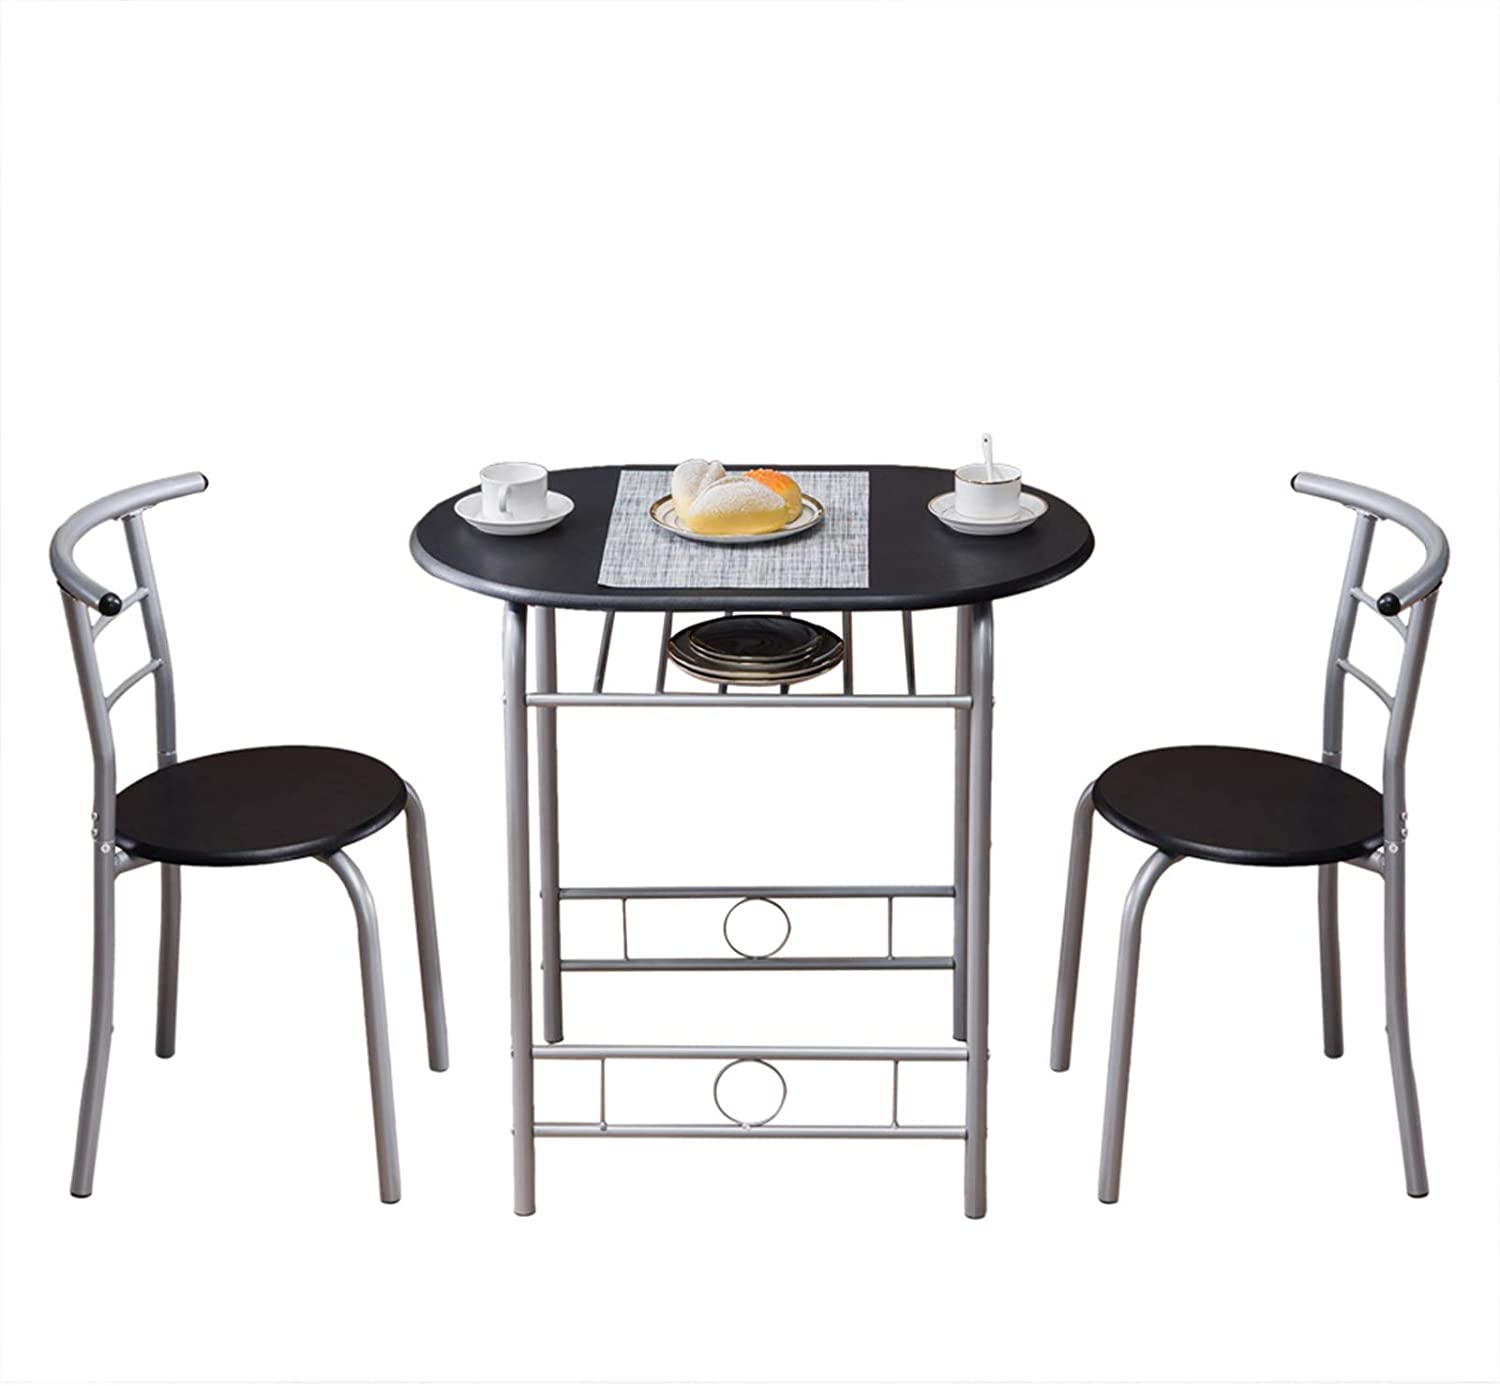 CIPACHO Dining Table Set 1 Chairs 2 C and Challenge the lowest price of Japan ☆ Selling selling